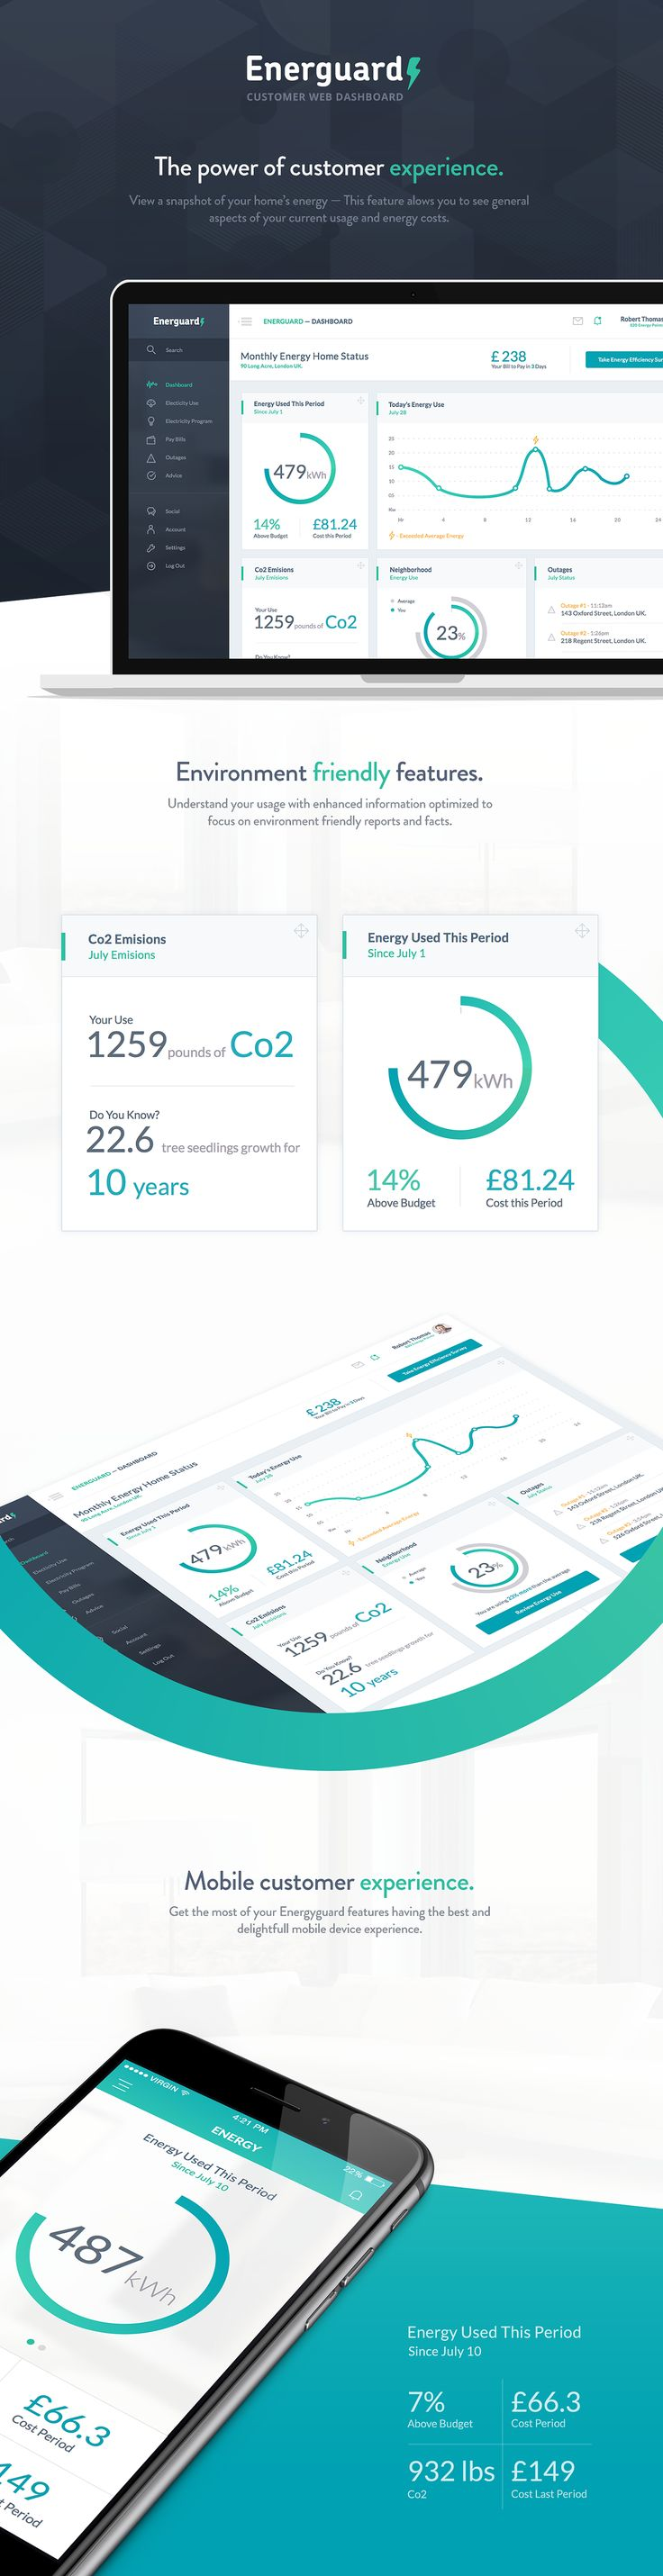 Energuard - Dashboard on Behance